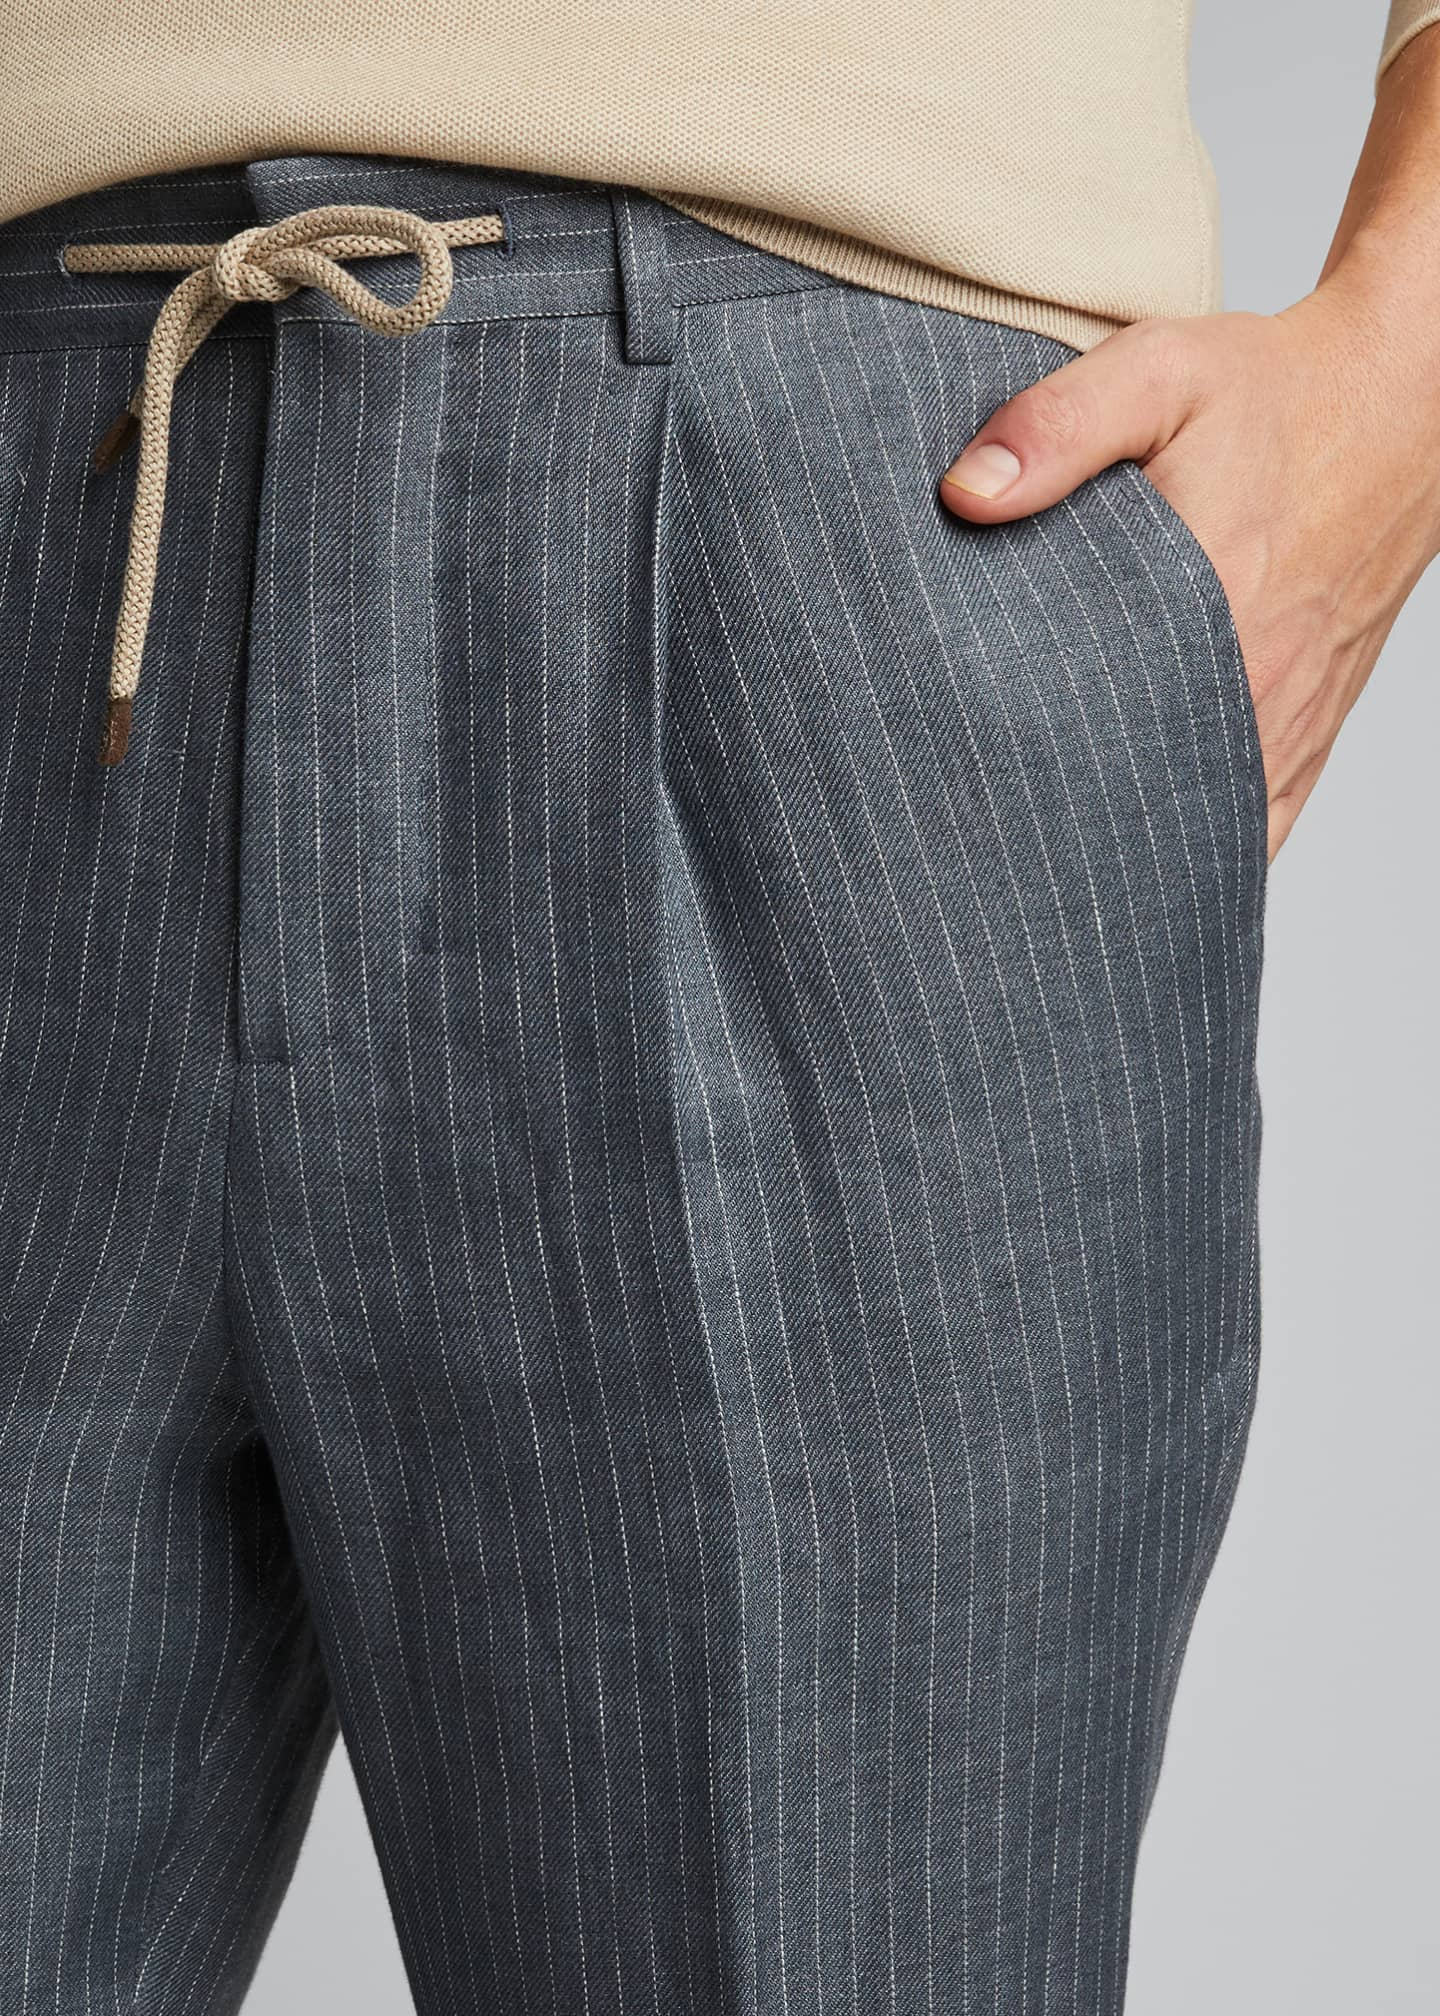 Image 4 of 4: Men's Exclusive Leisure-Fit Drawstring Suit Separate Pants